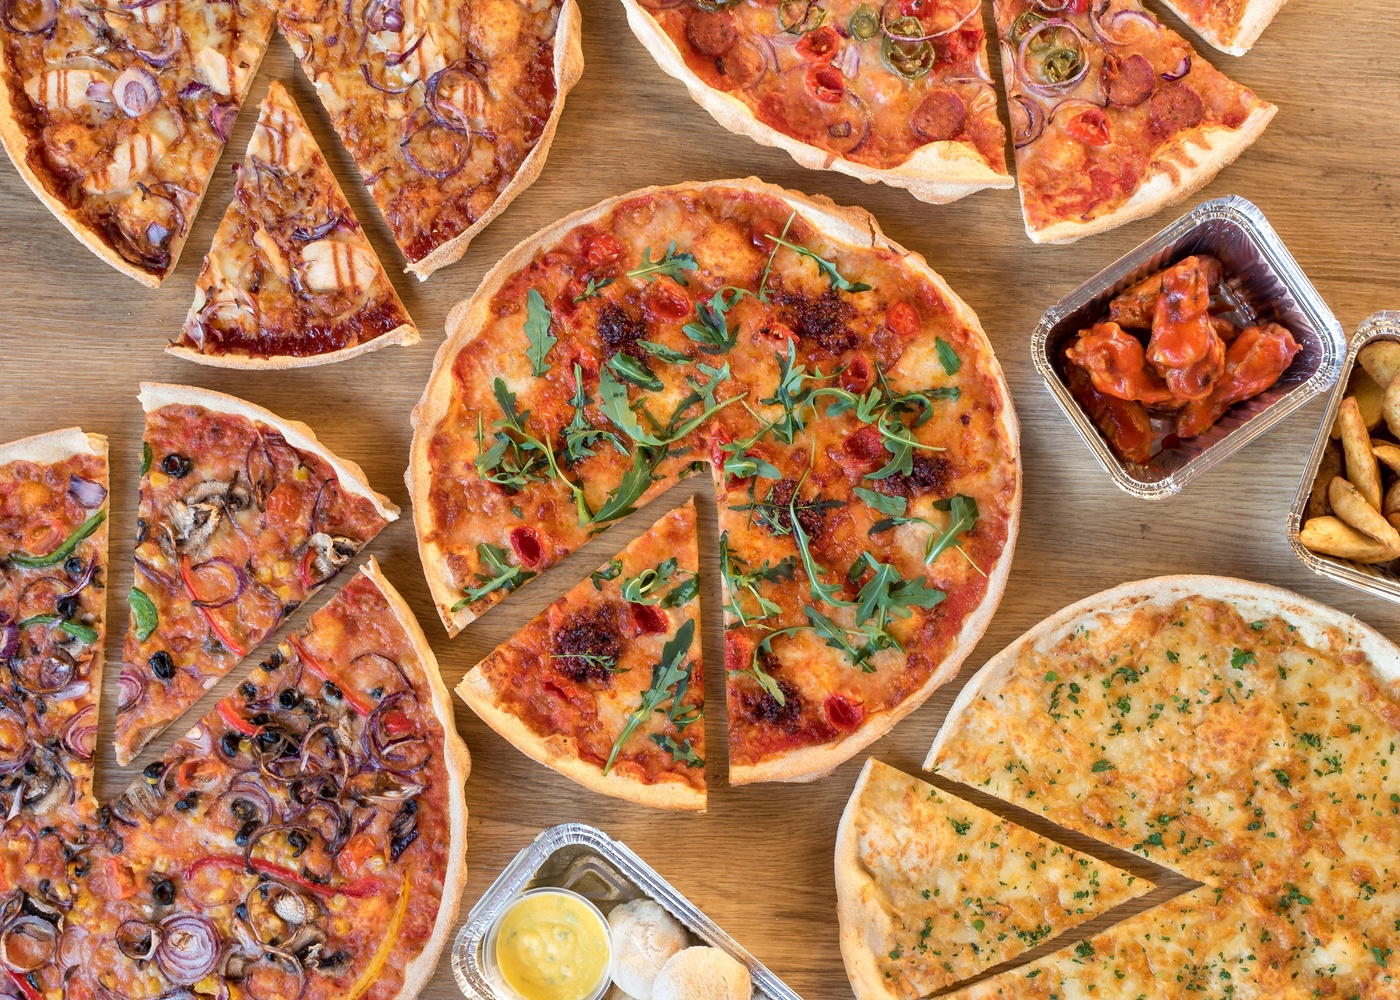 Pizza Feast by Kevin Drury